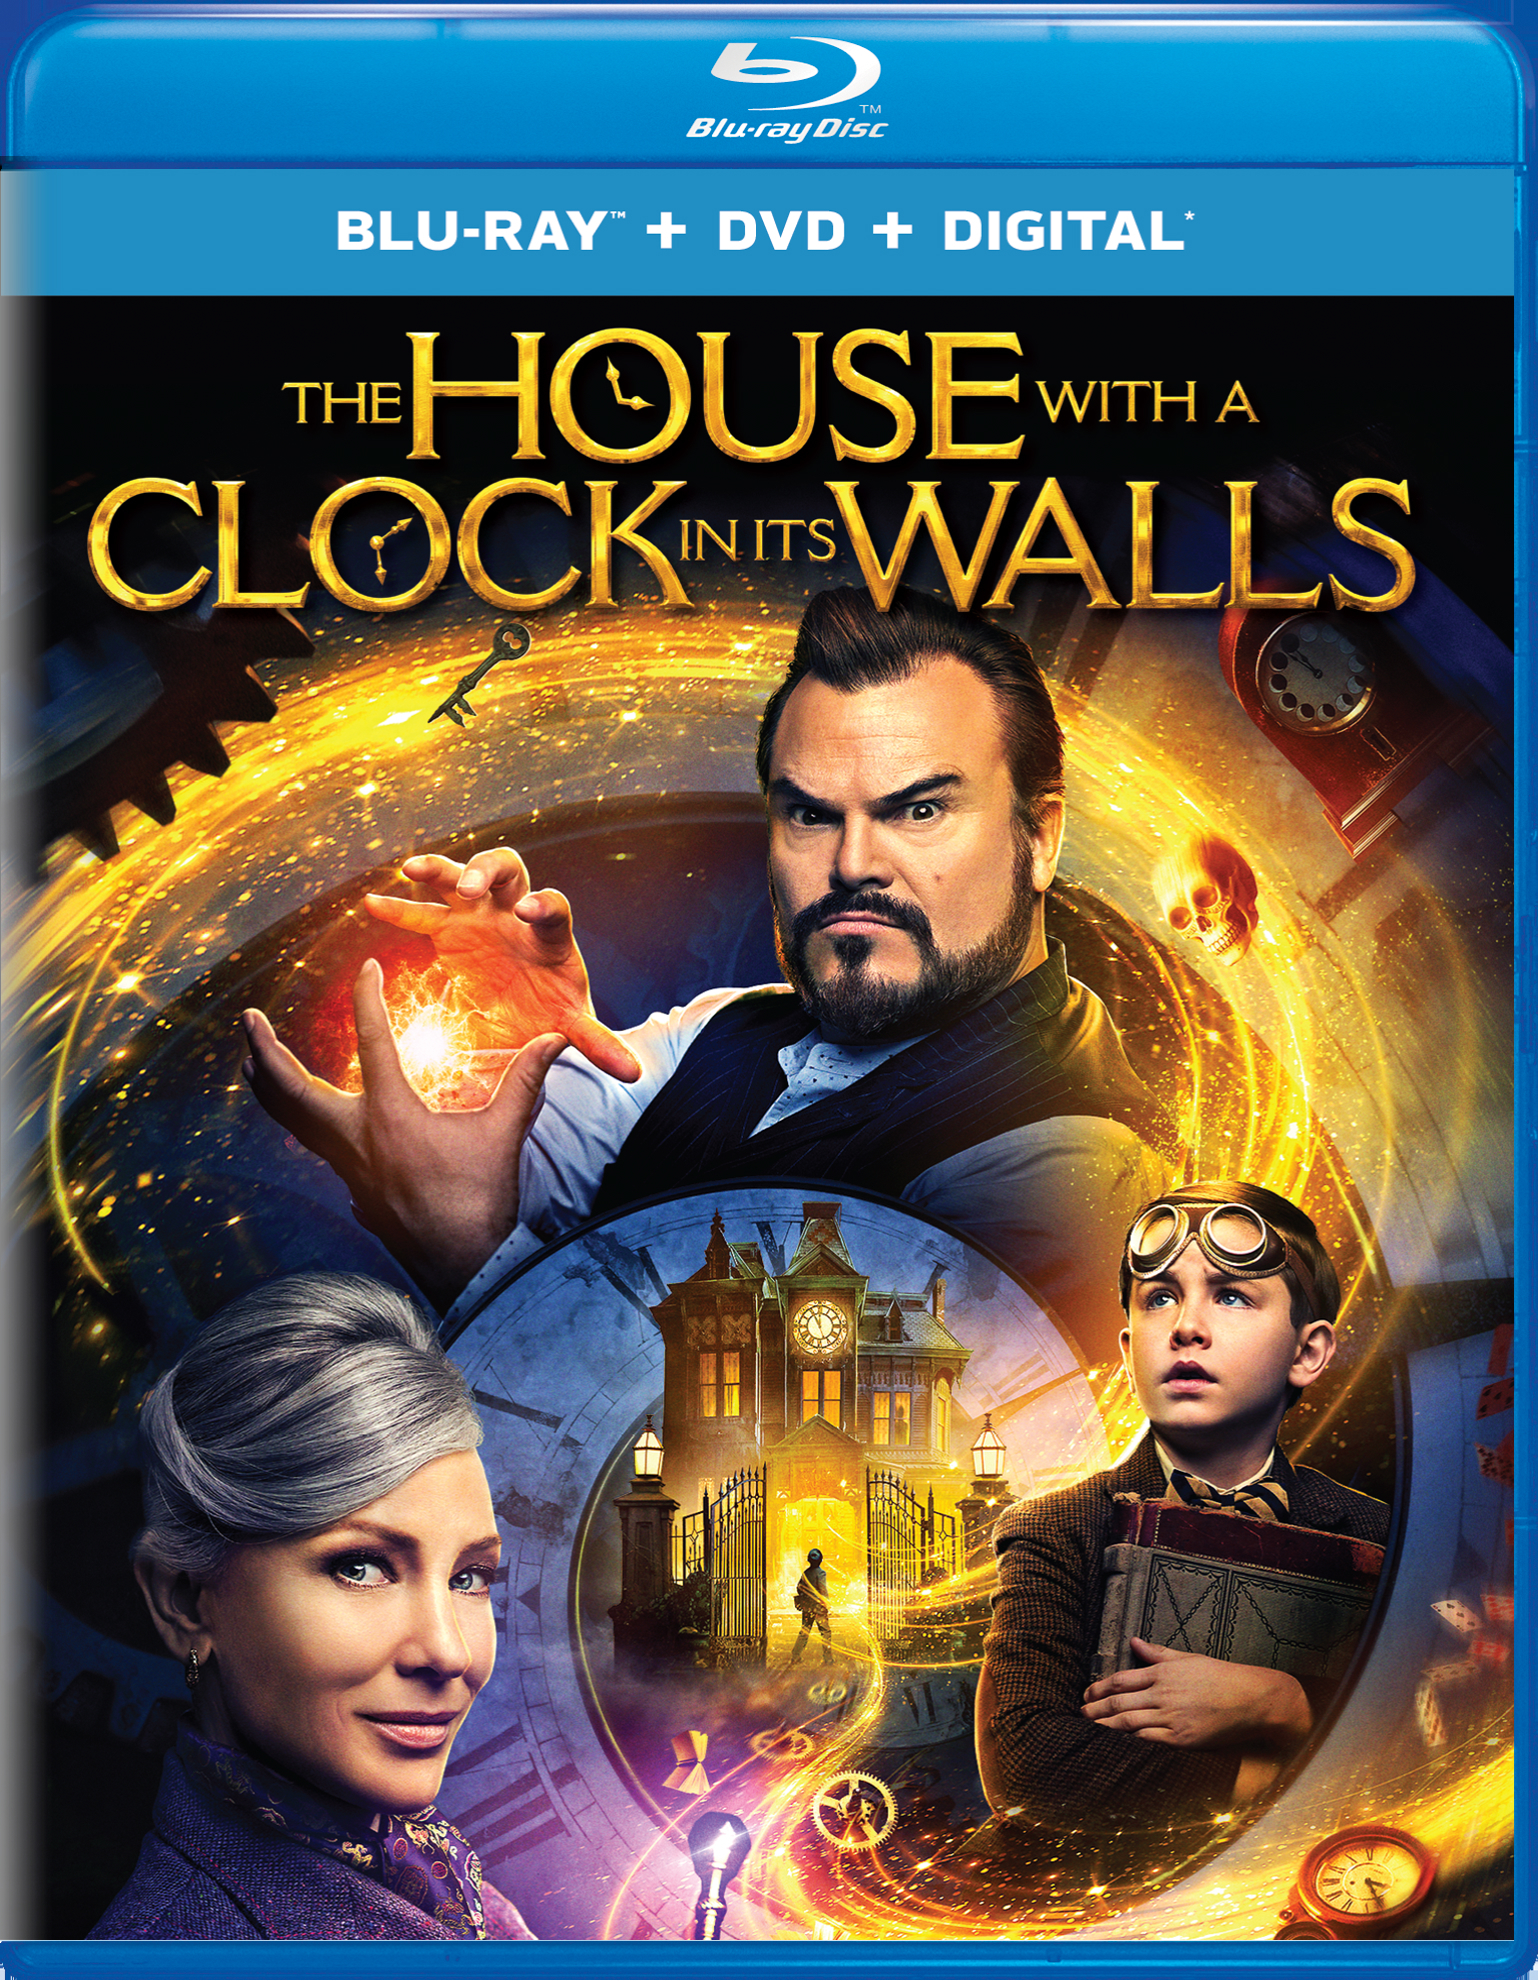 The House With a Clock in Its Walls (with DVD - Double Play) [Blu-ray]